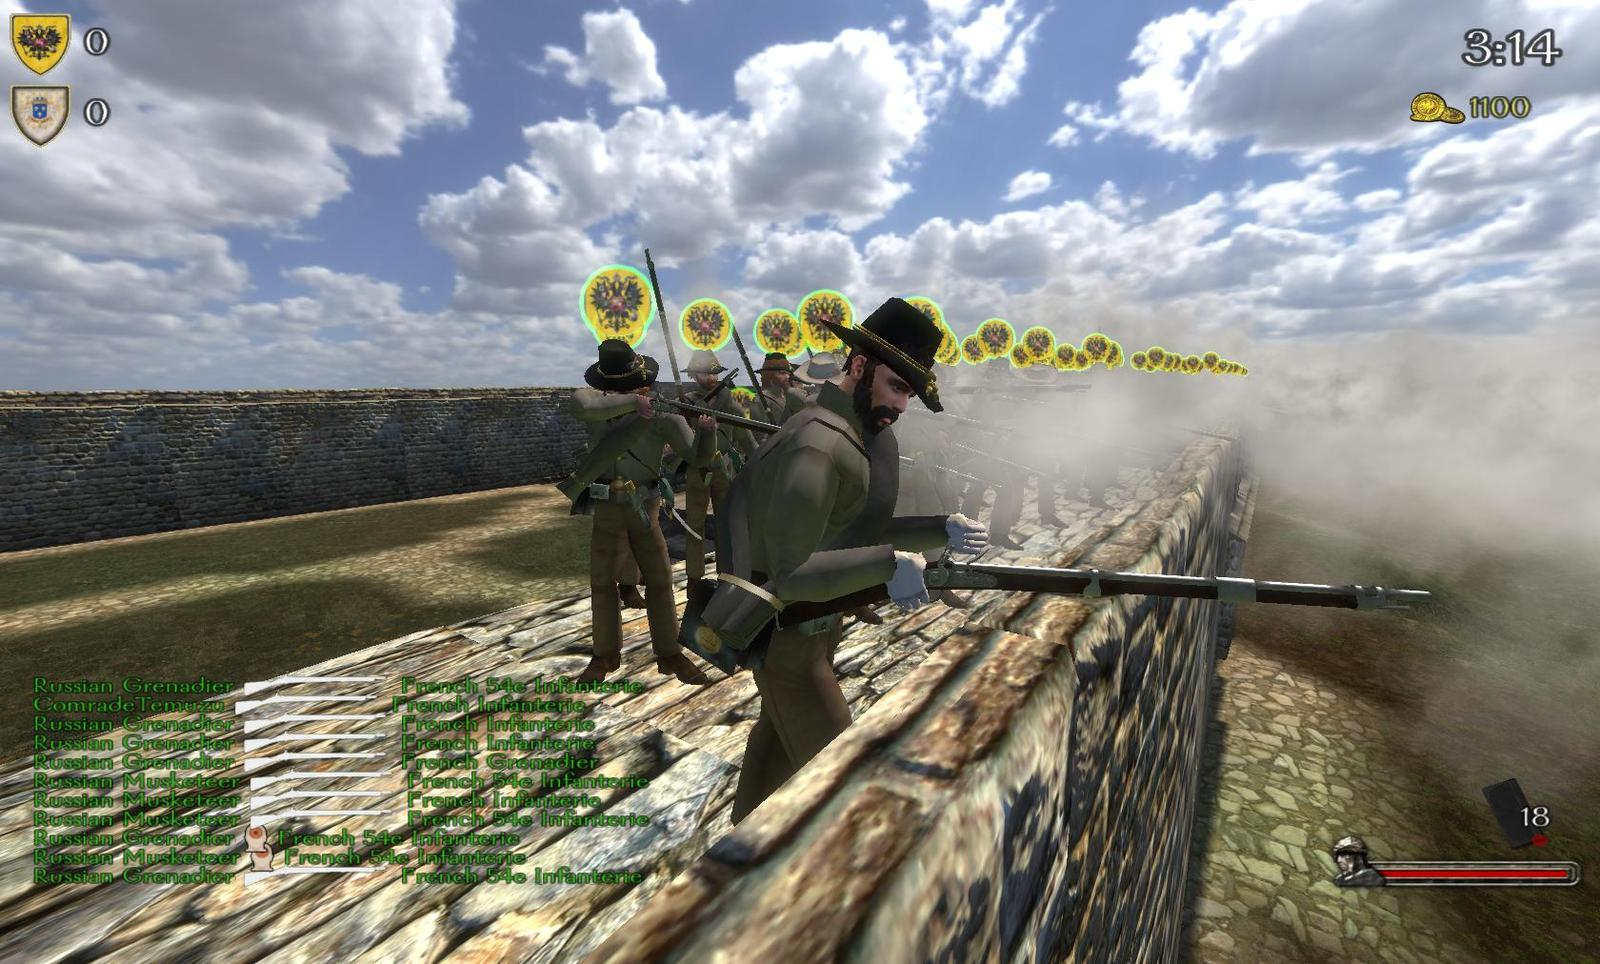 Mount and blade warband american civil war mod download